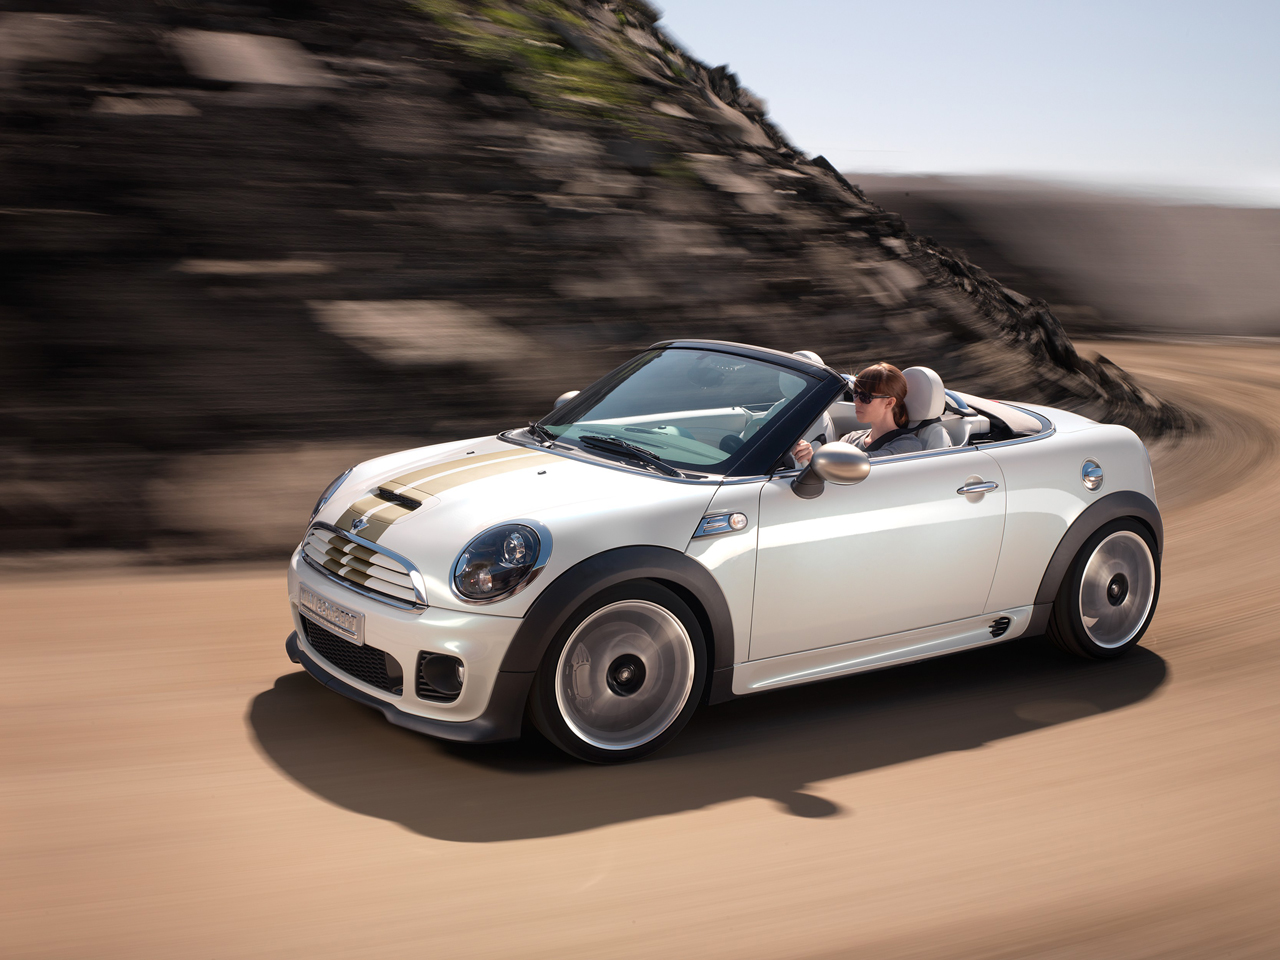 Officially joining the Mini Coupe Concept in Frankfurt is the Mini Roadster Concept. The Mini Roadster is a two-seater with a chopped roofline and a more ...